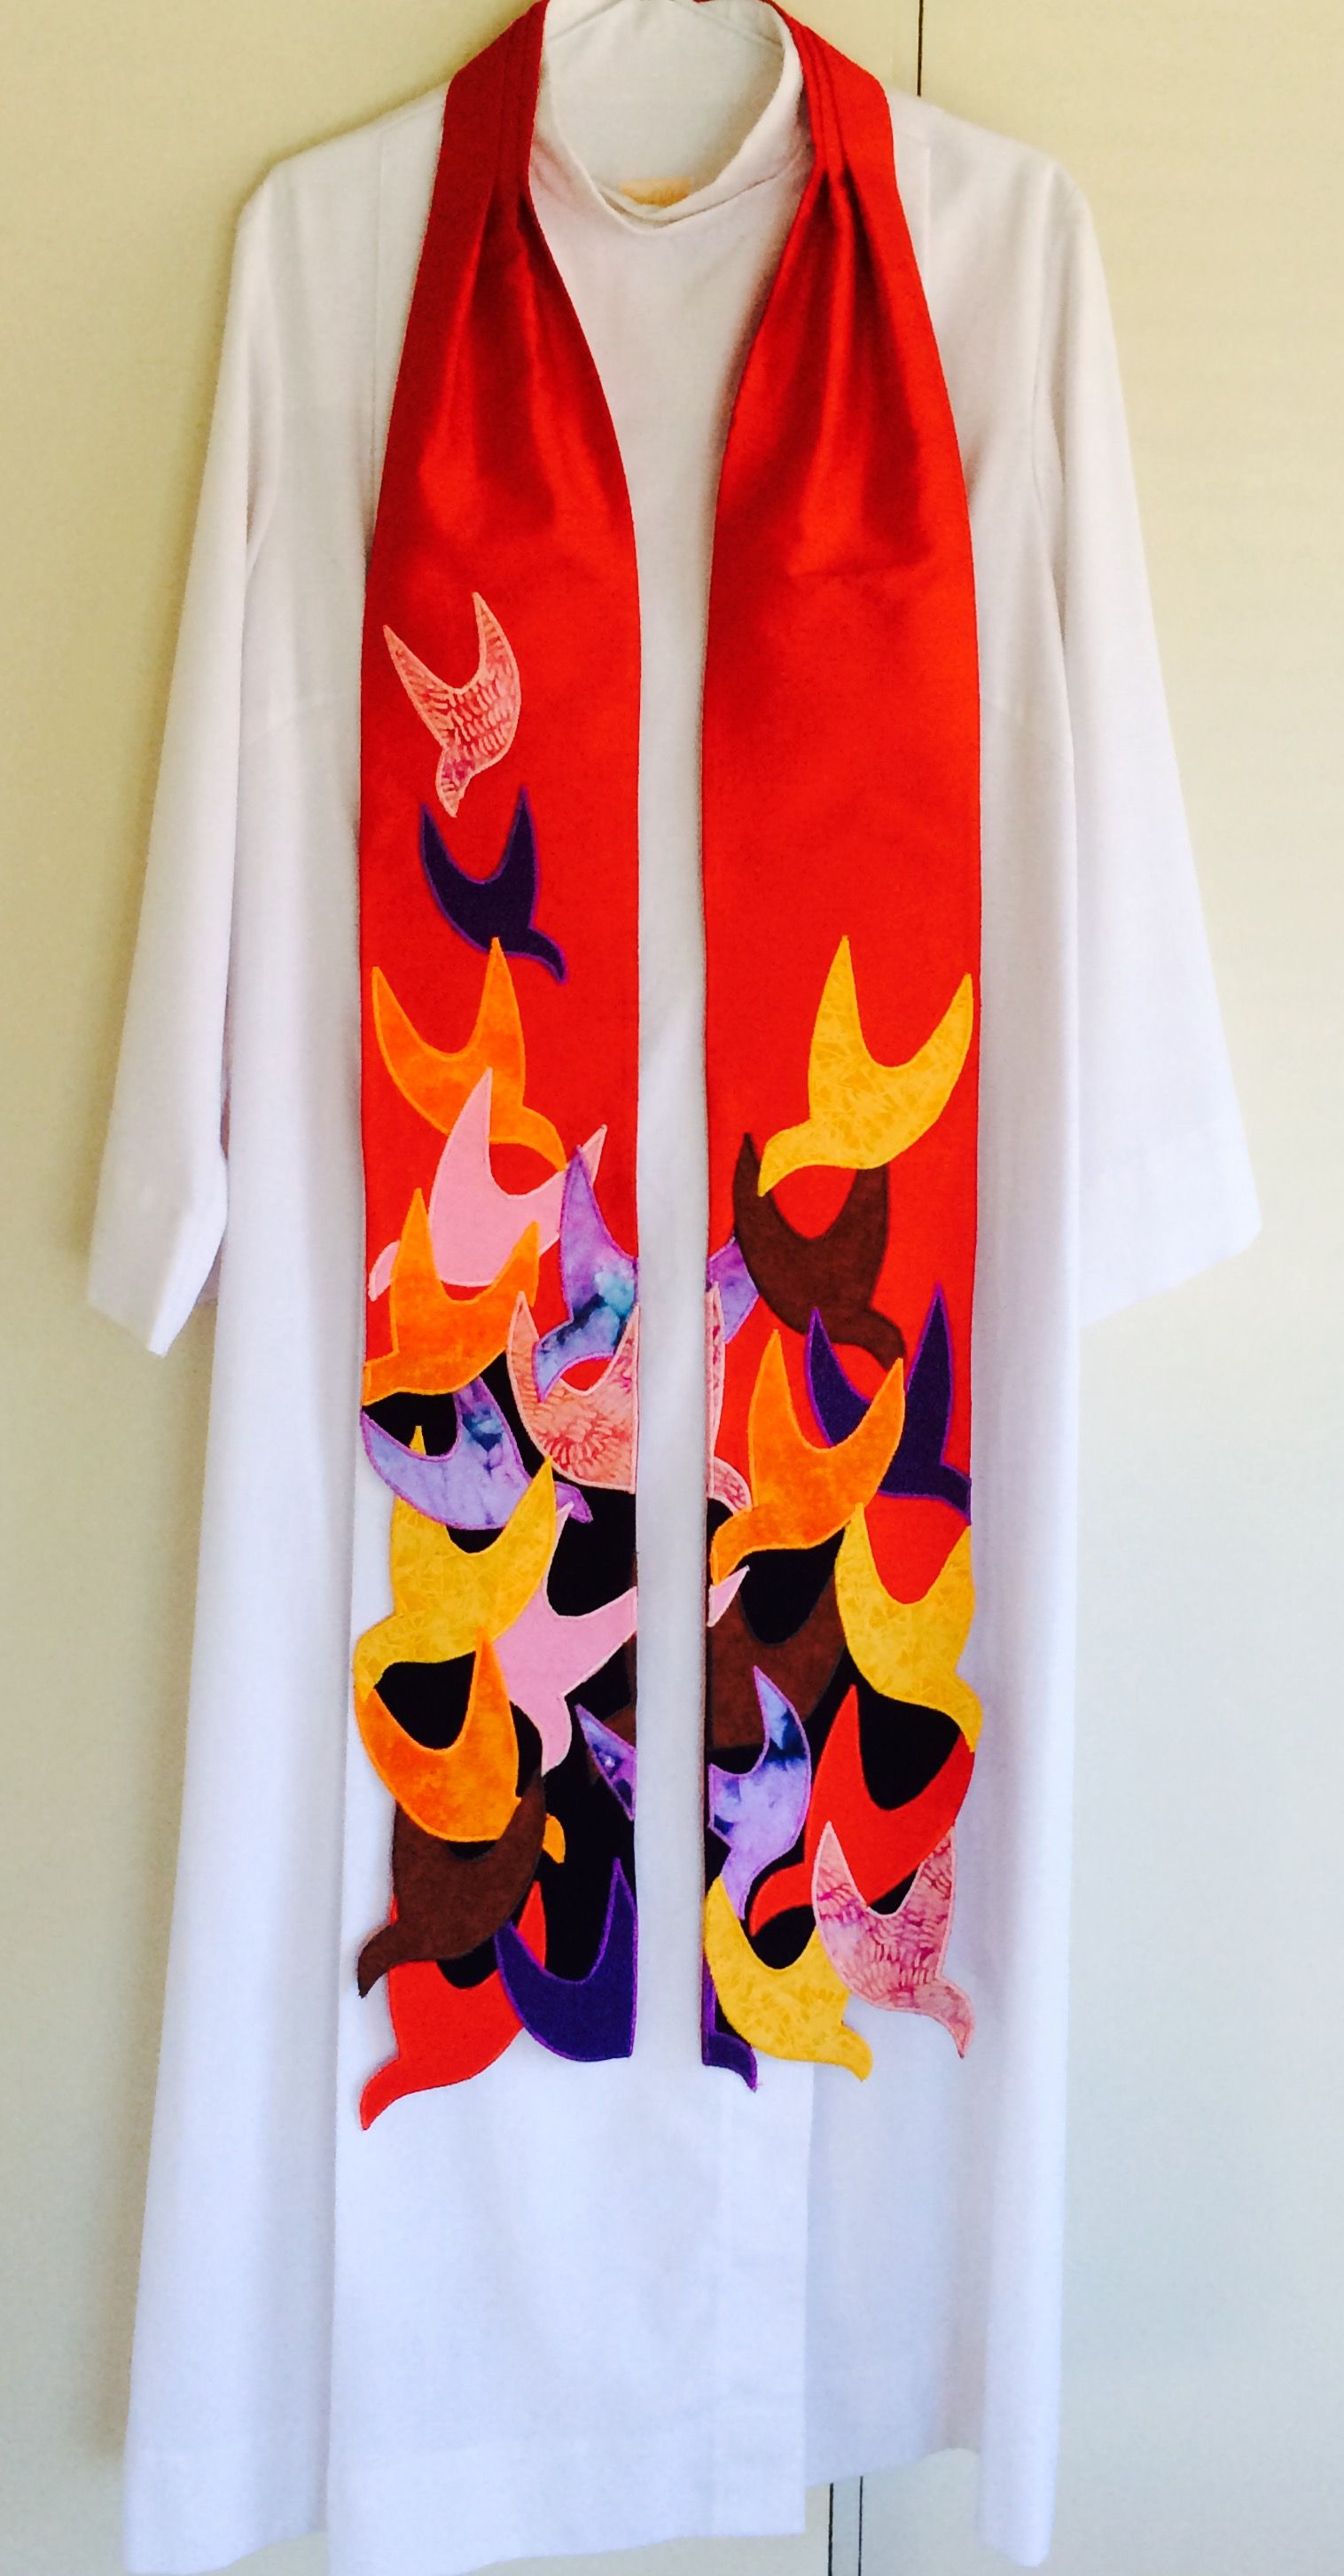 Filled With The Spirit Flames As Doves And Dove As Flame The Dove Represents The Holy Spirit Great For Penteco Liturgical Stoles Church Banners Priest Stole